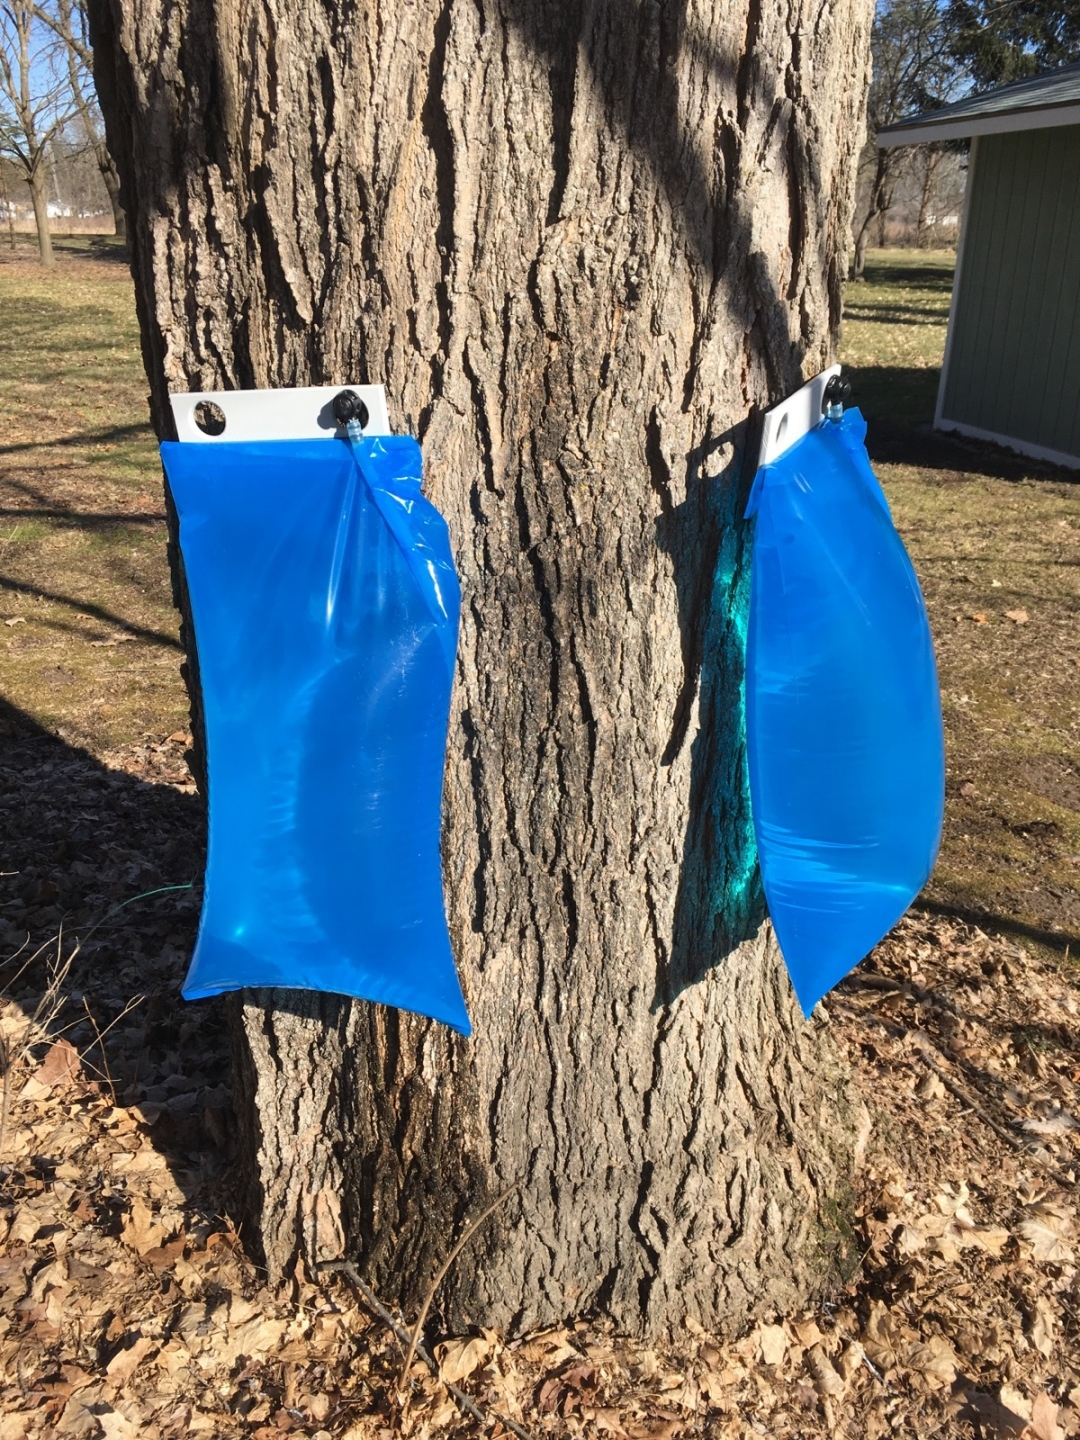 Collection bags overflowing with maple sap on the LeSage property.